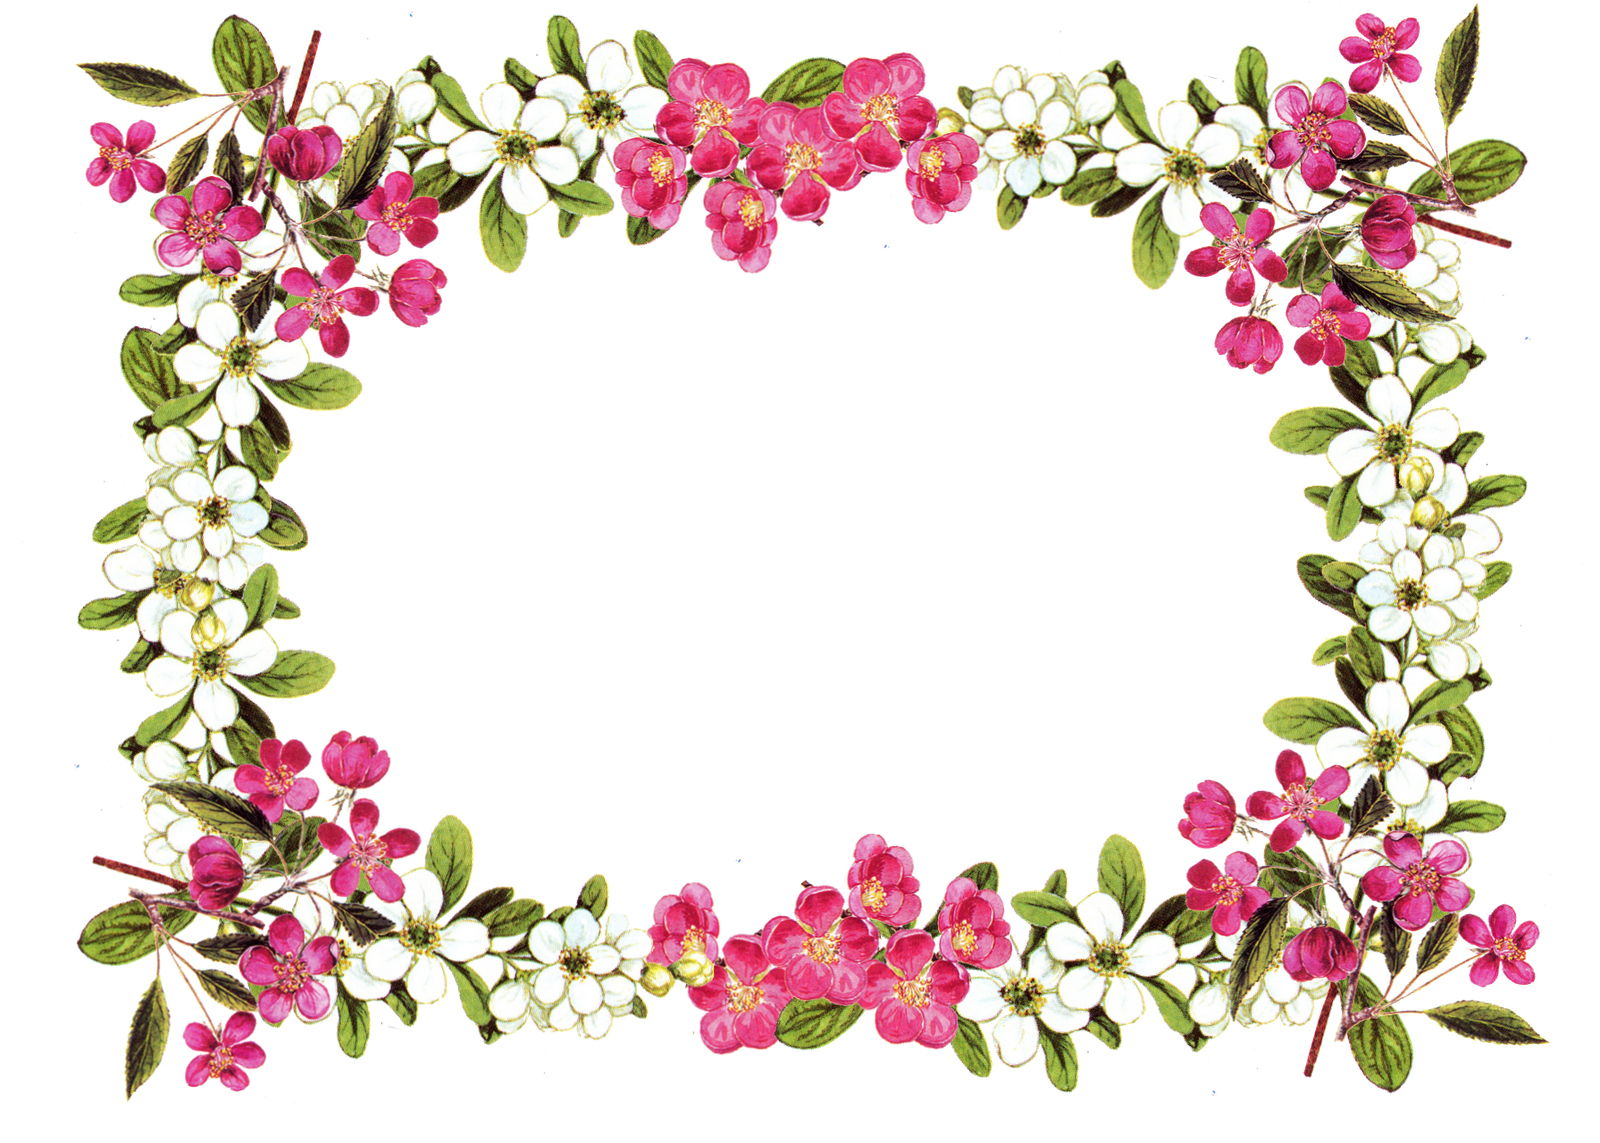 Free Digital Flower Frame Png In Vintage Design Blumenrahmen